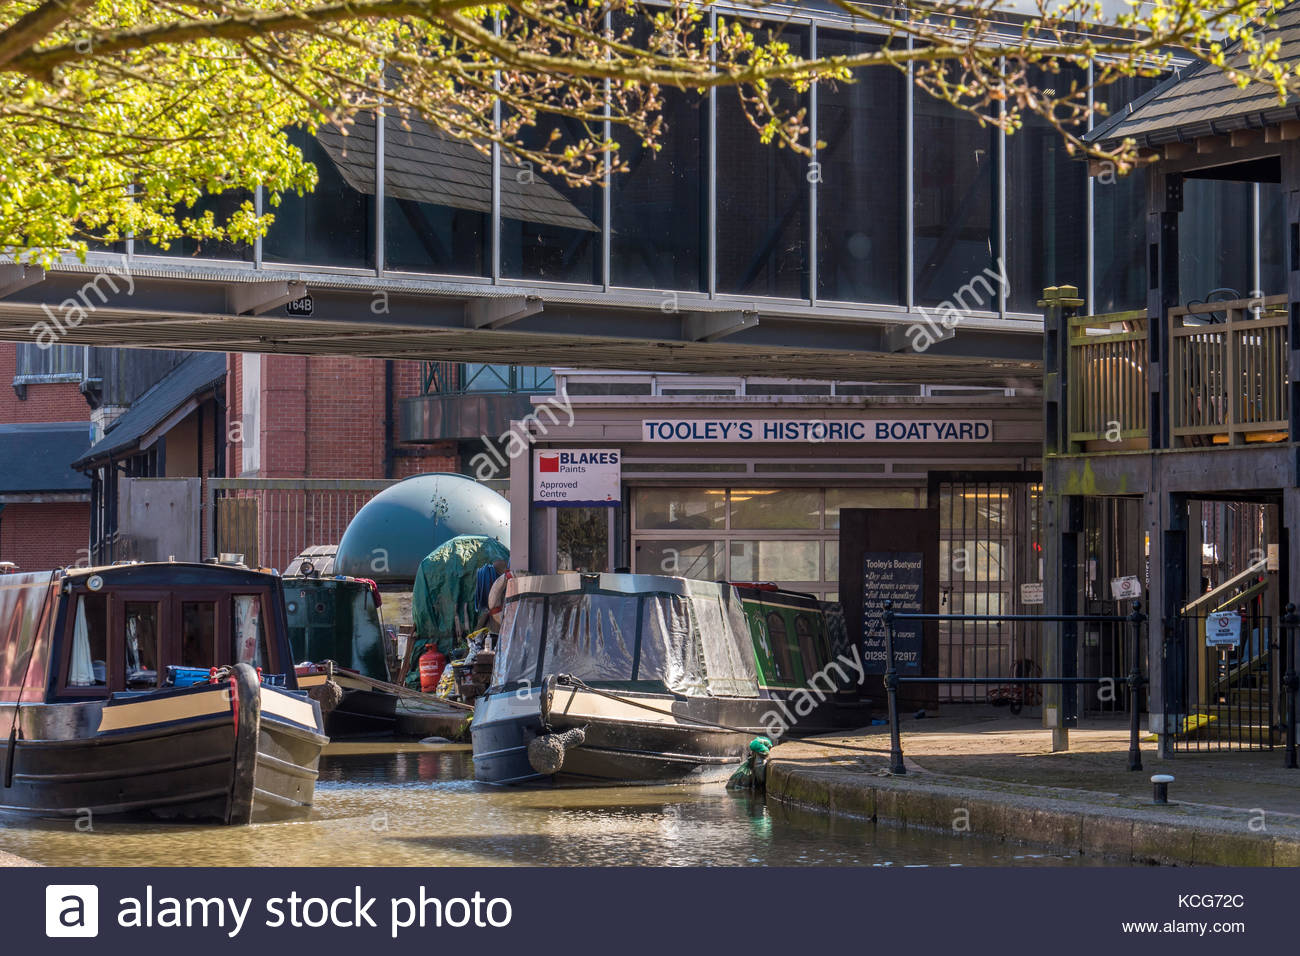 Tooleys Historic Boatyard Oxford Canal Banbury Oxfordshire England - Stock Image